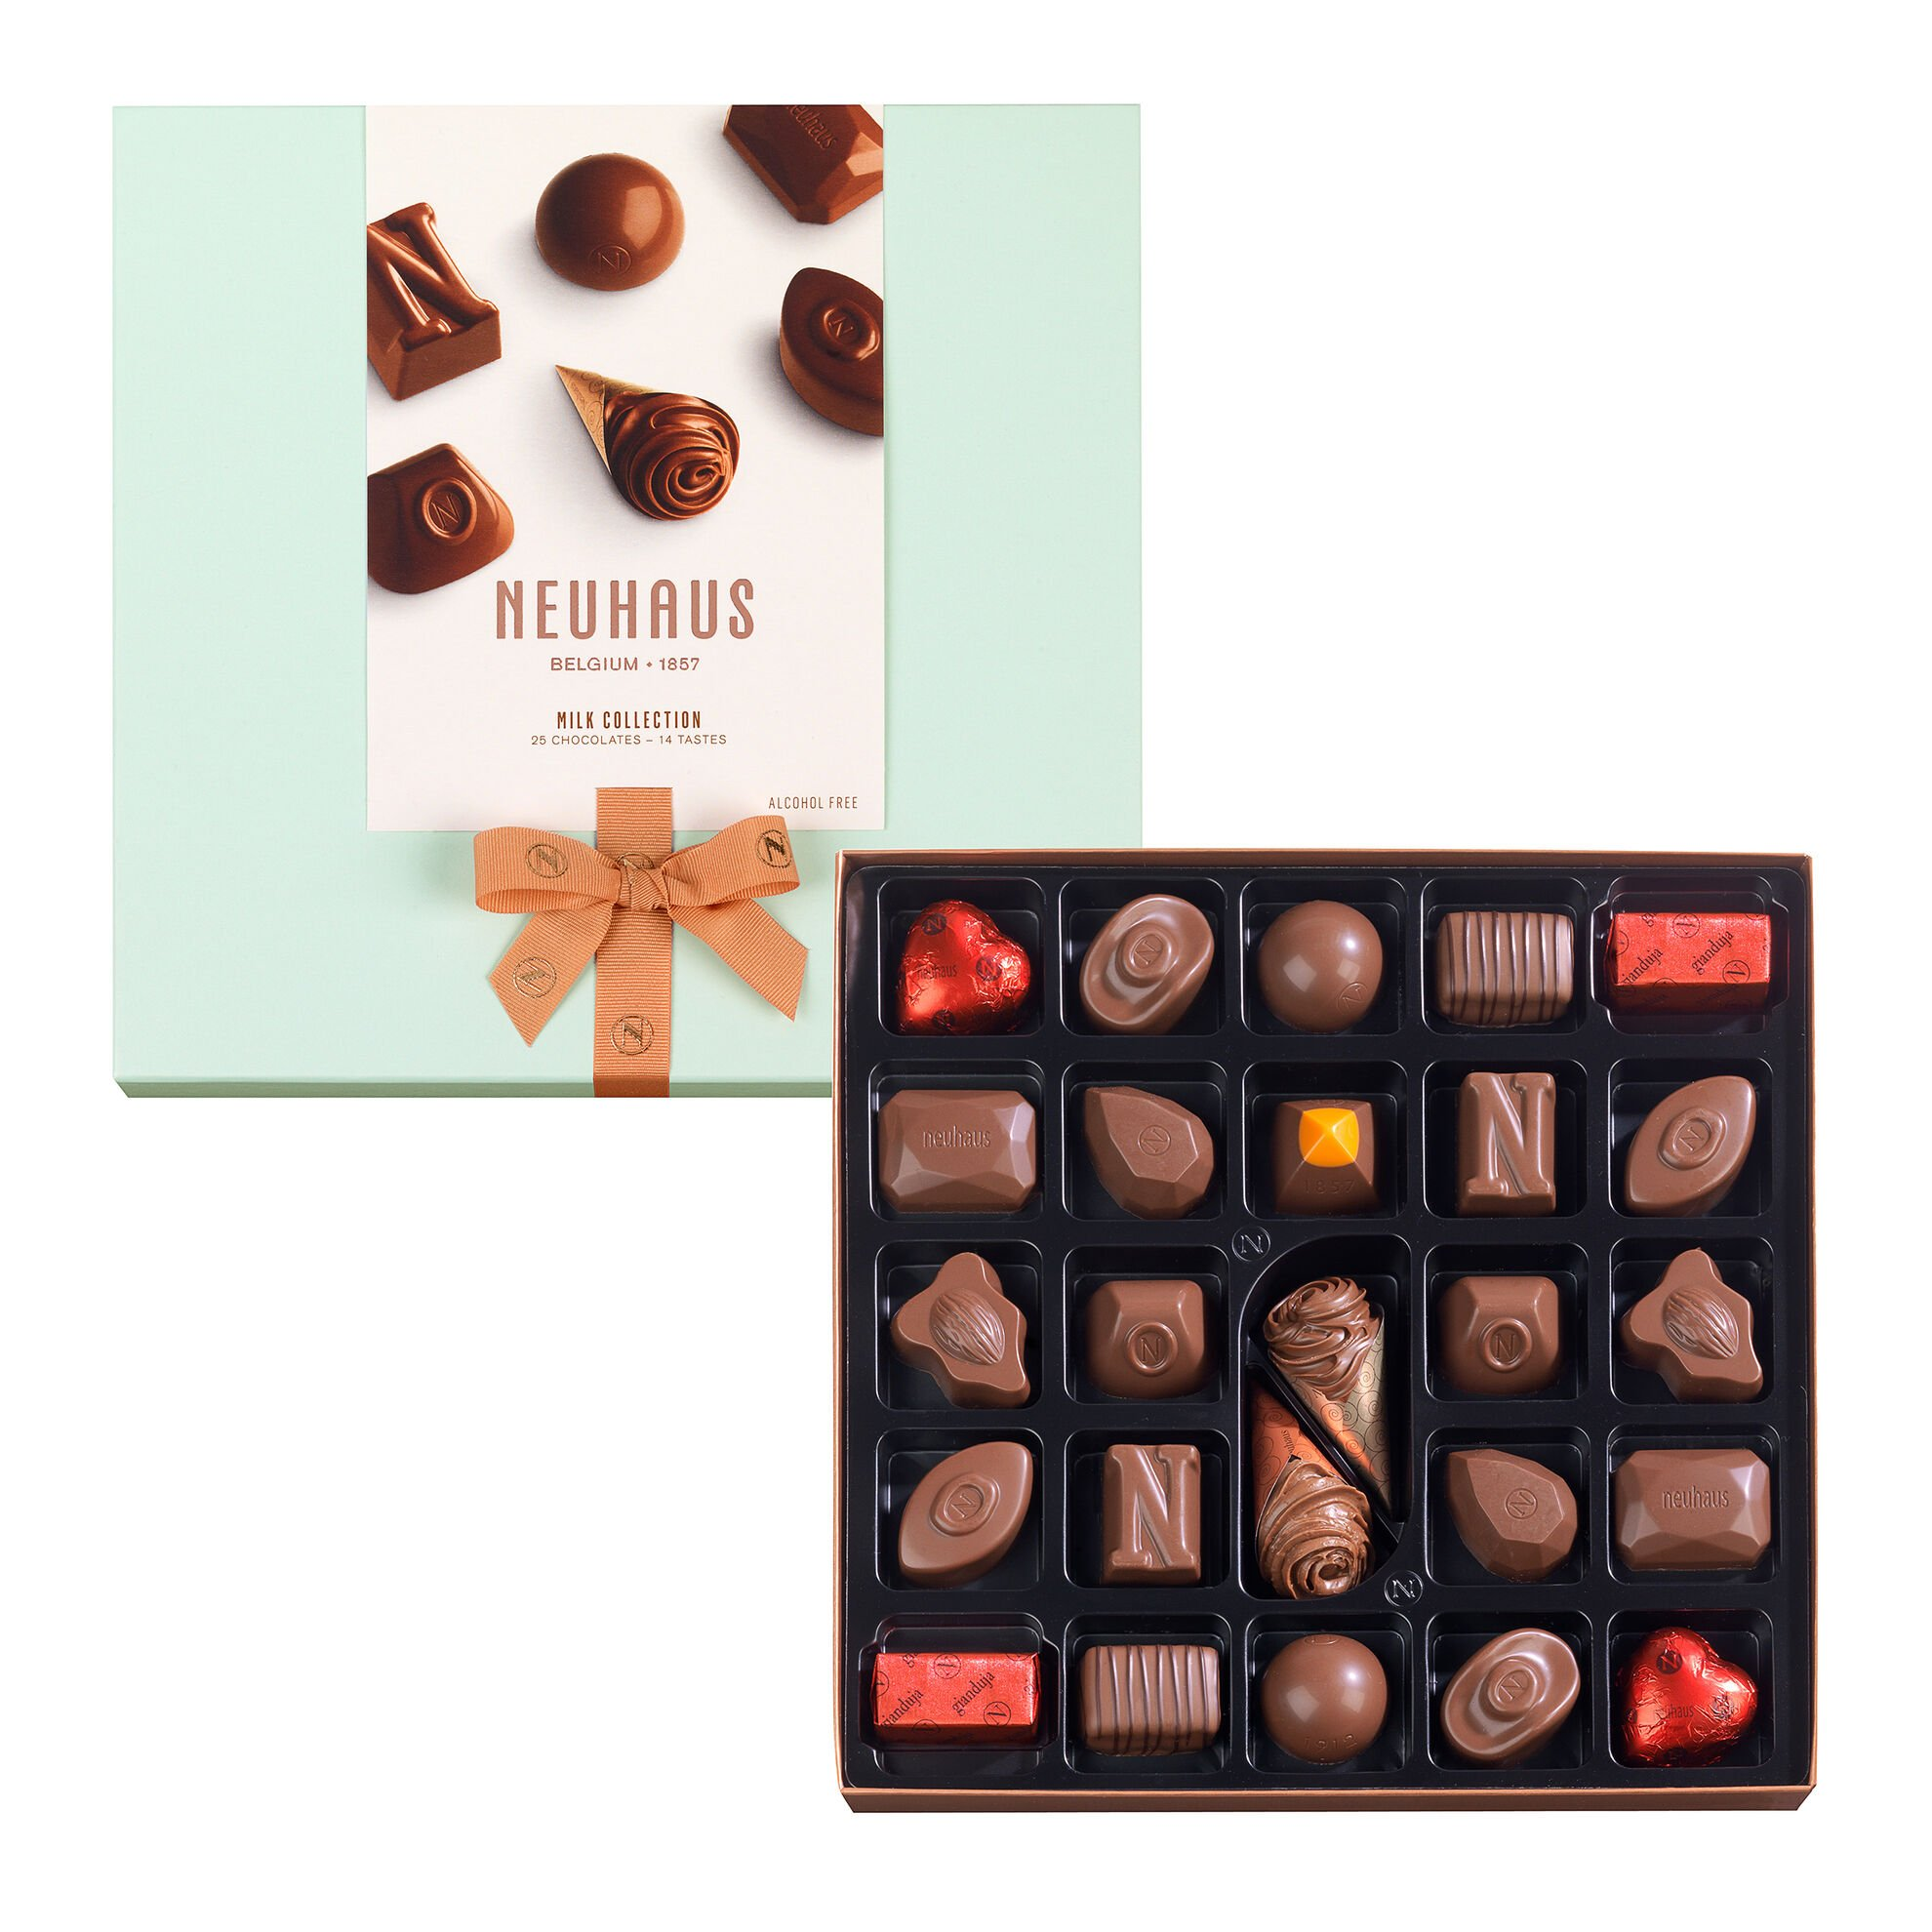 Neuhaus Collection Milk Chocolate Assortment 25 pcs image number 01